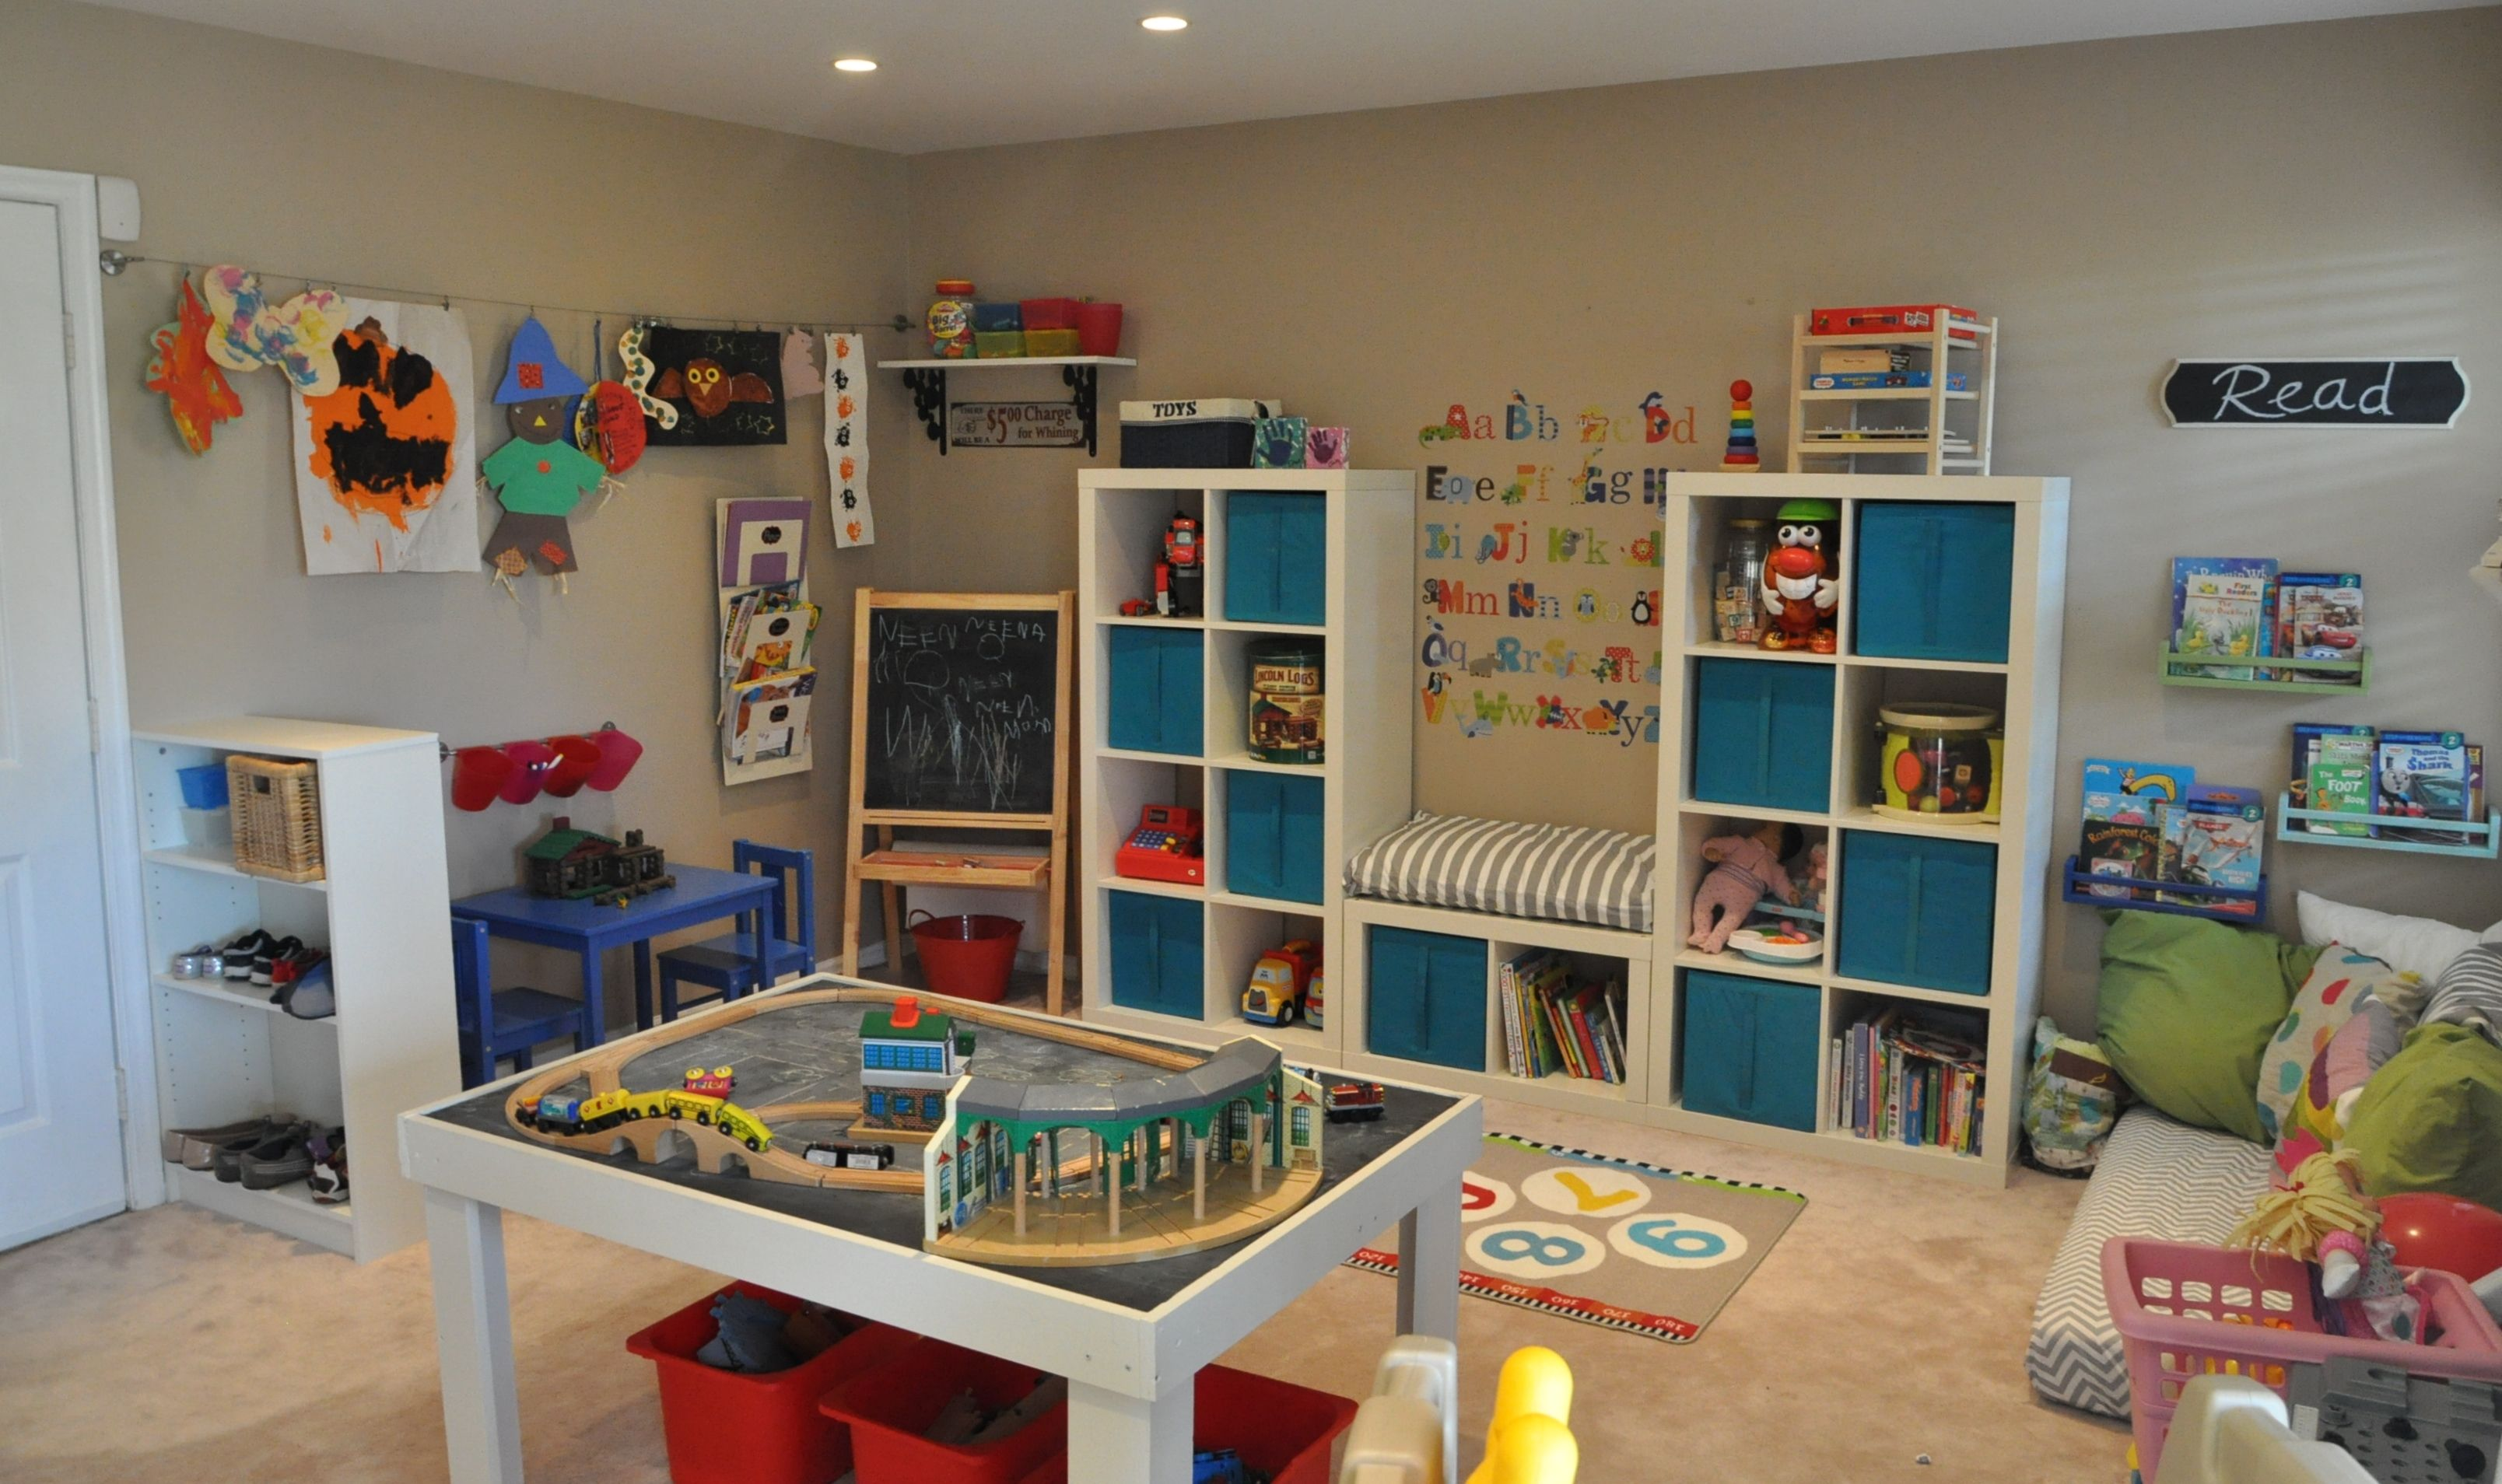 Design Playroom Storage playroom storage pinterest storage